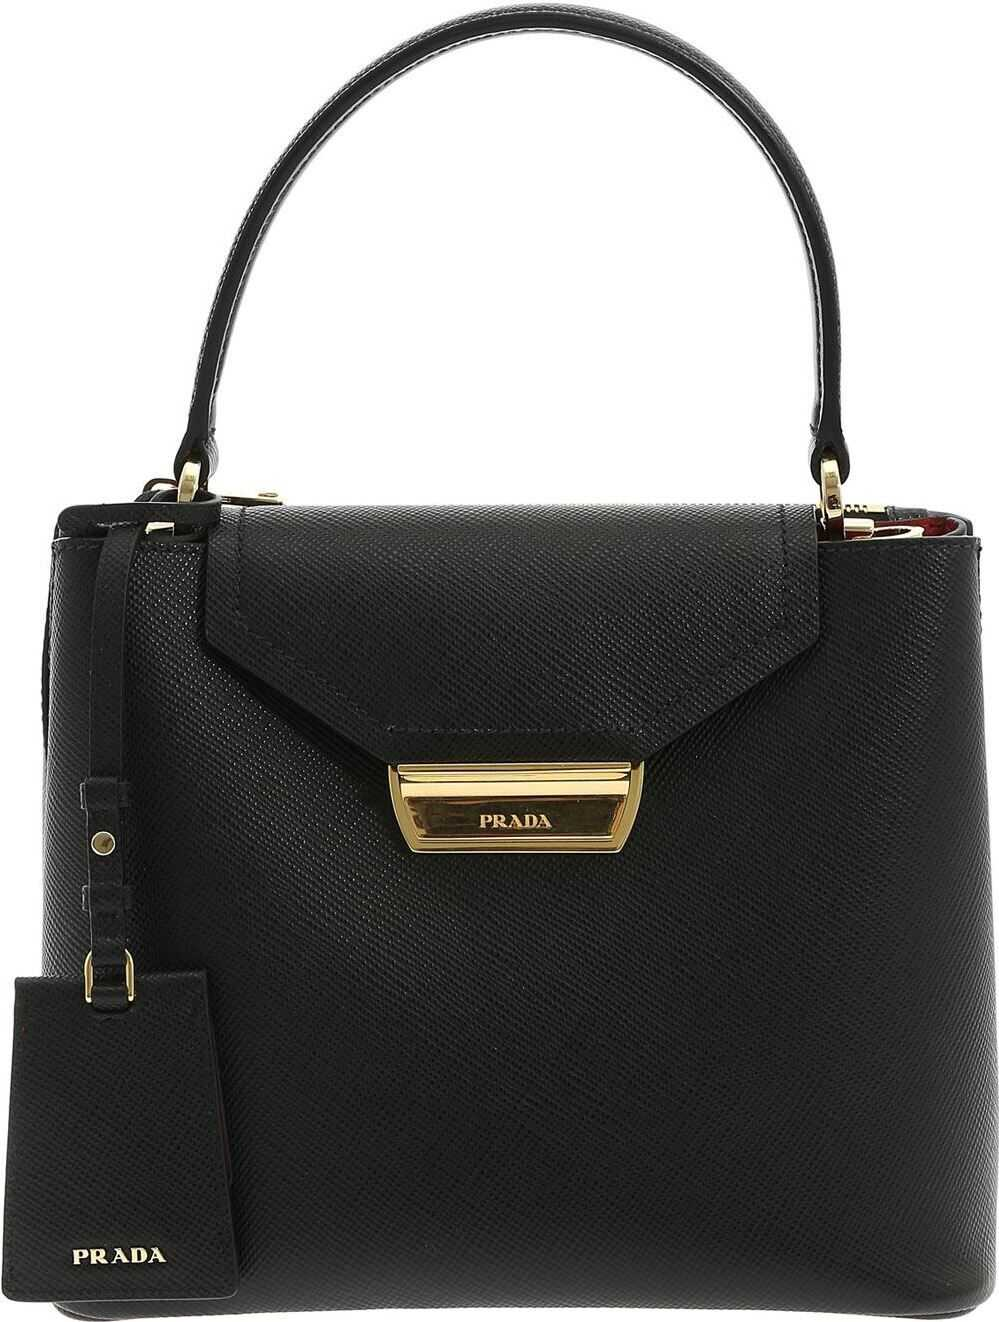 Logo Leather Handbag In Black thumbnail